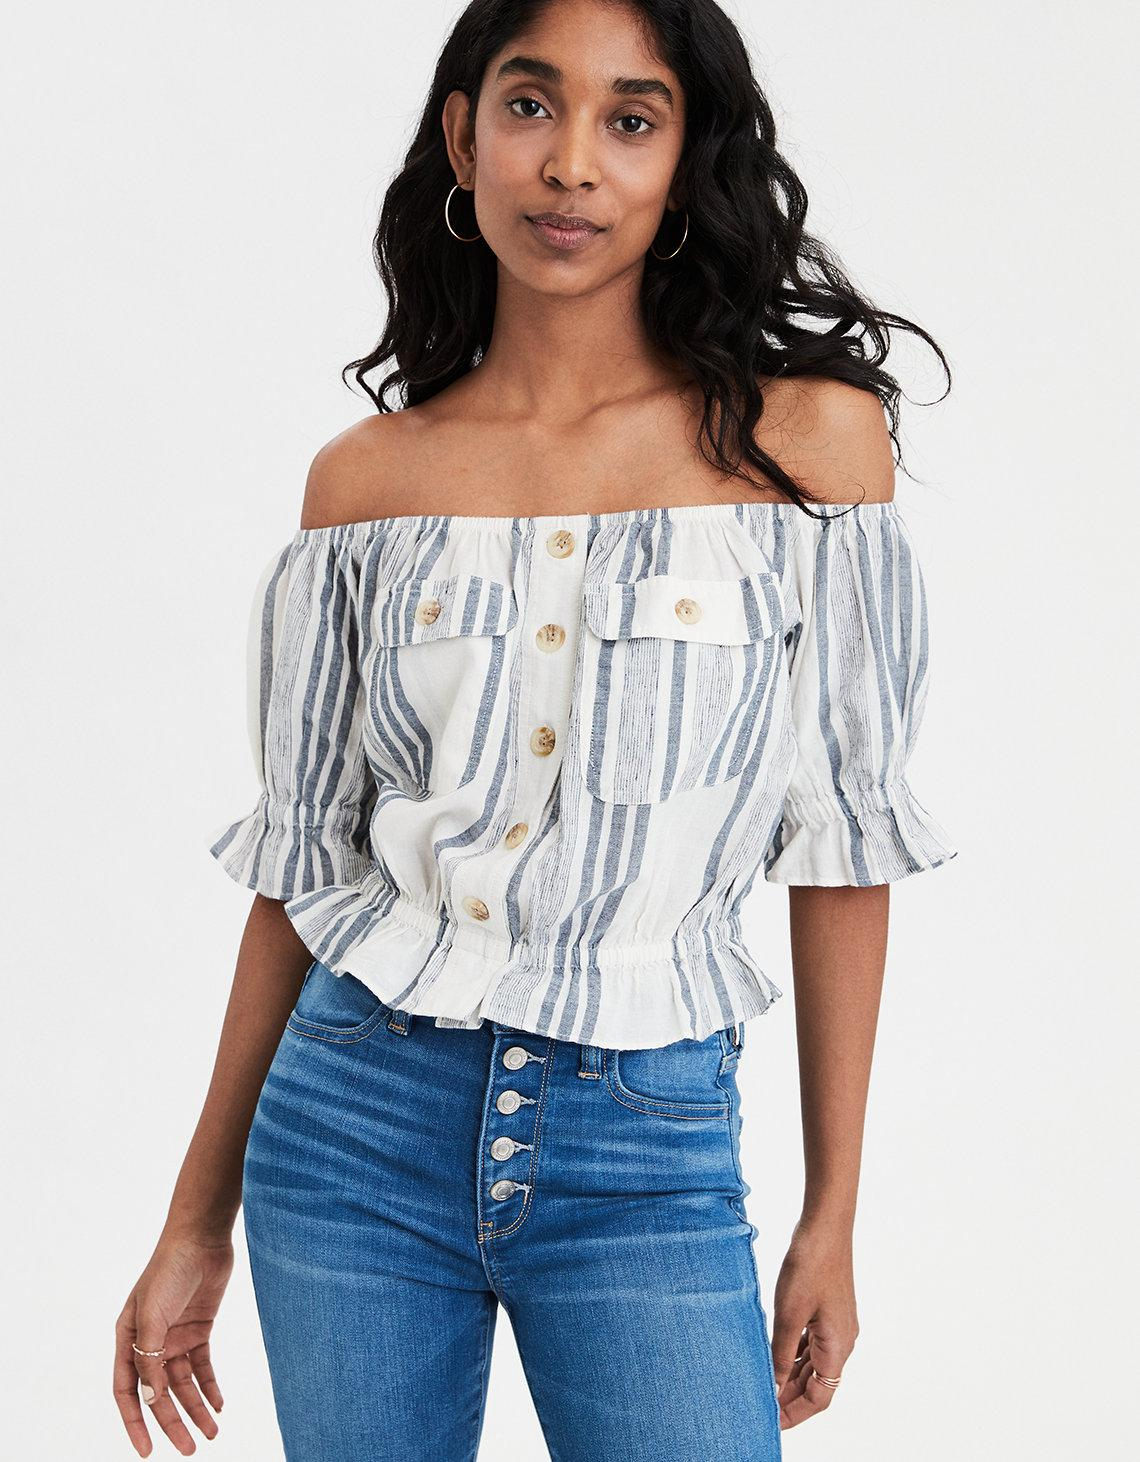 64728560cf49b Lyst - American Eagle Ae Patch Pocket Off-the-shoulder Top in Blue